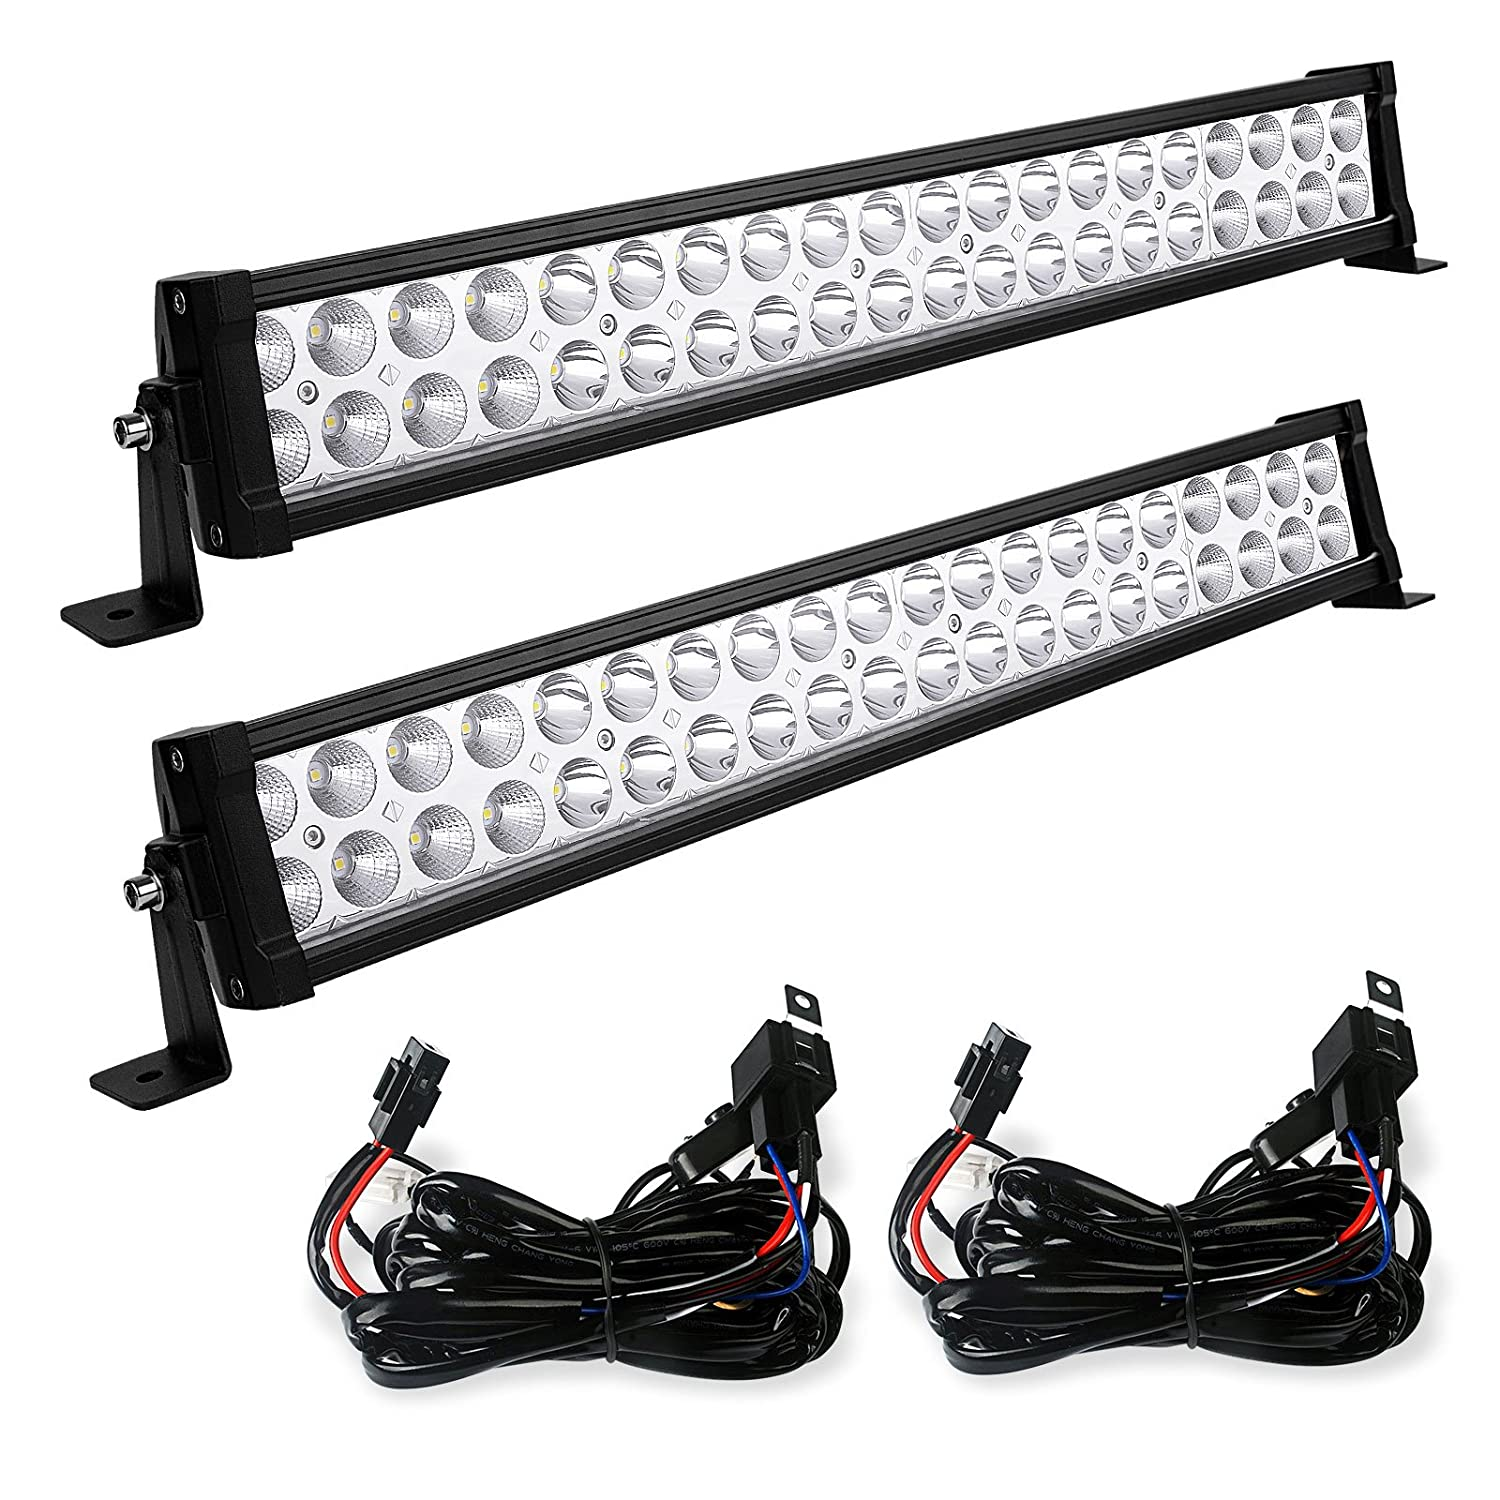 Amazon.com: LED Light Bar YITAMOTOR 2PCS 24 inch Light Bar Spot Flood Combo  Offroad Driving Lights with Wiring Harness compatible for ATV Jeep Truck  4x4 4WD ...